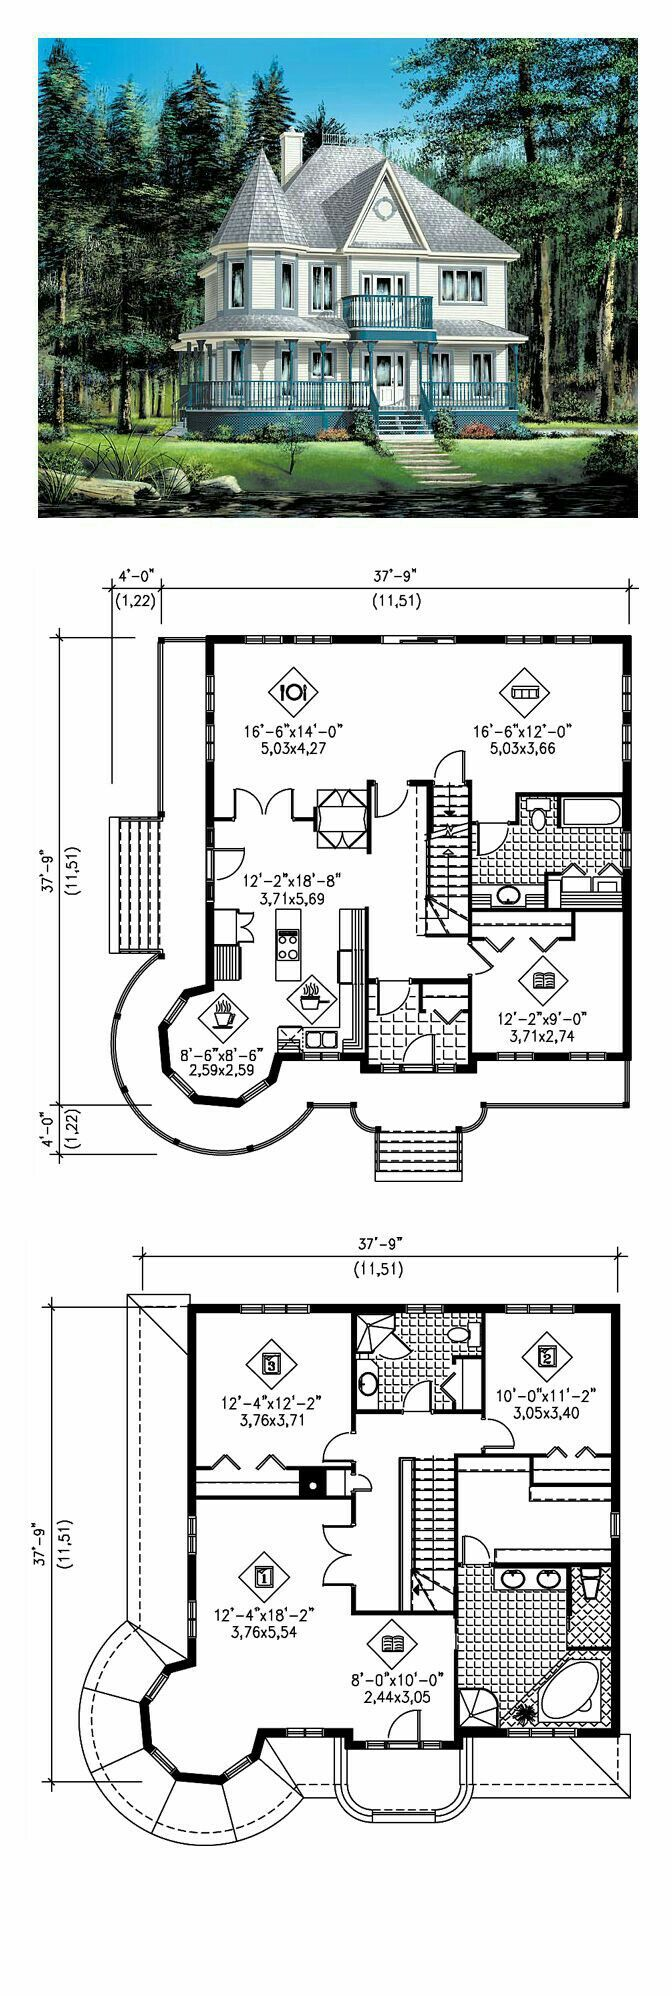 Cute and simple Victorian House Plan